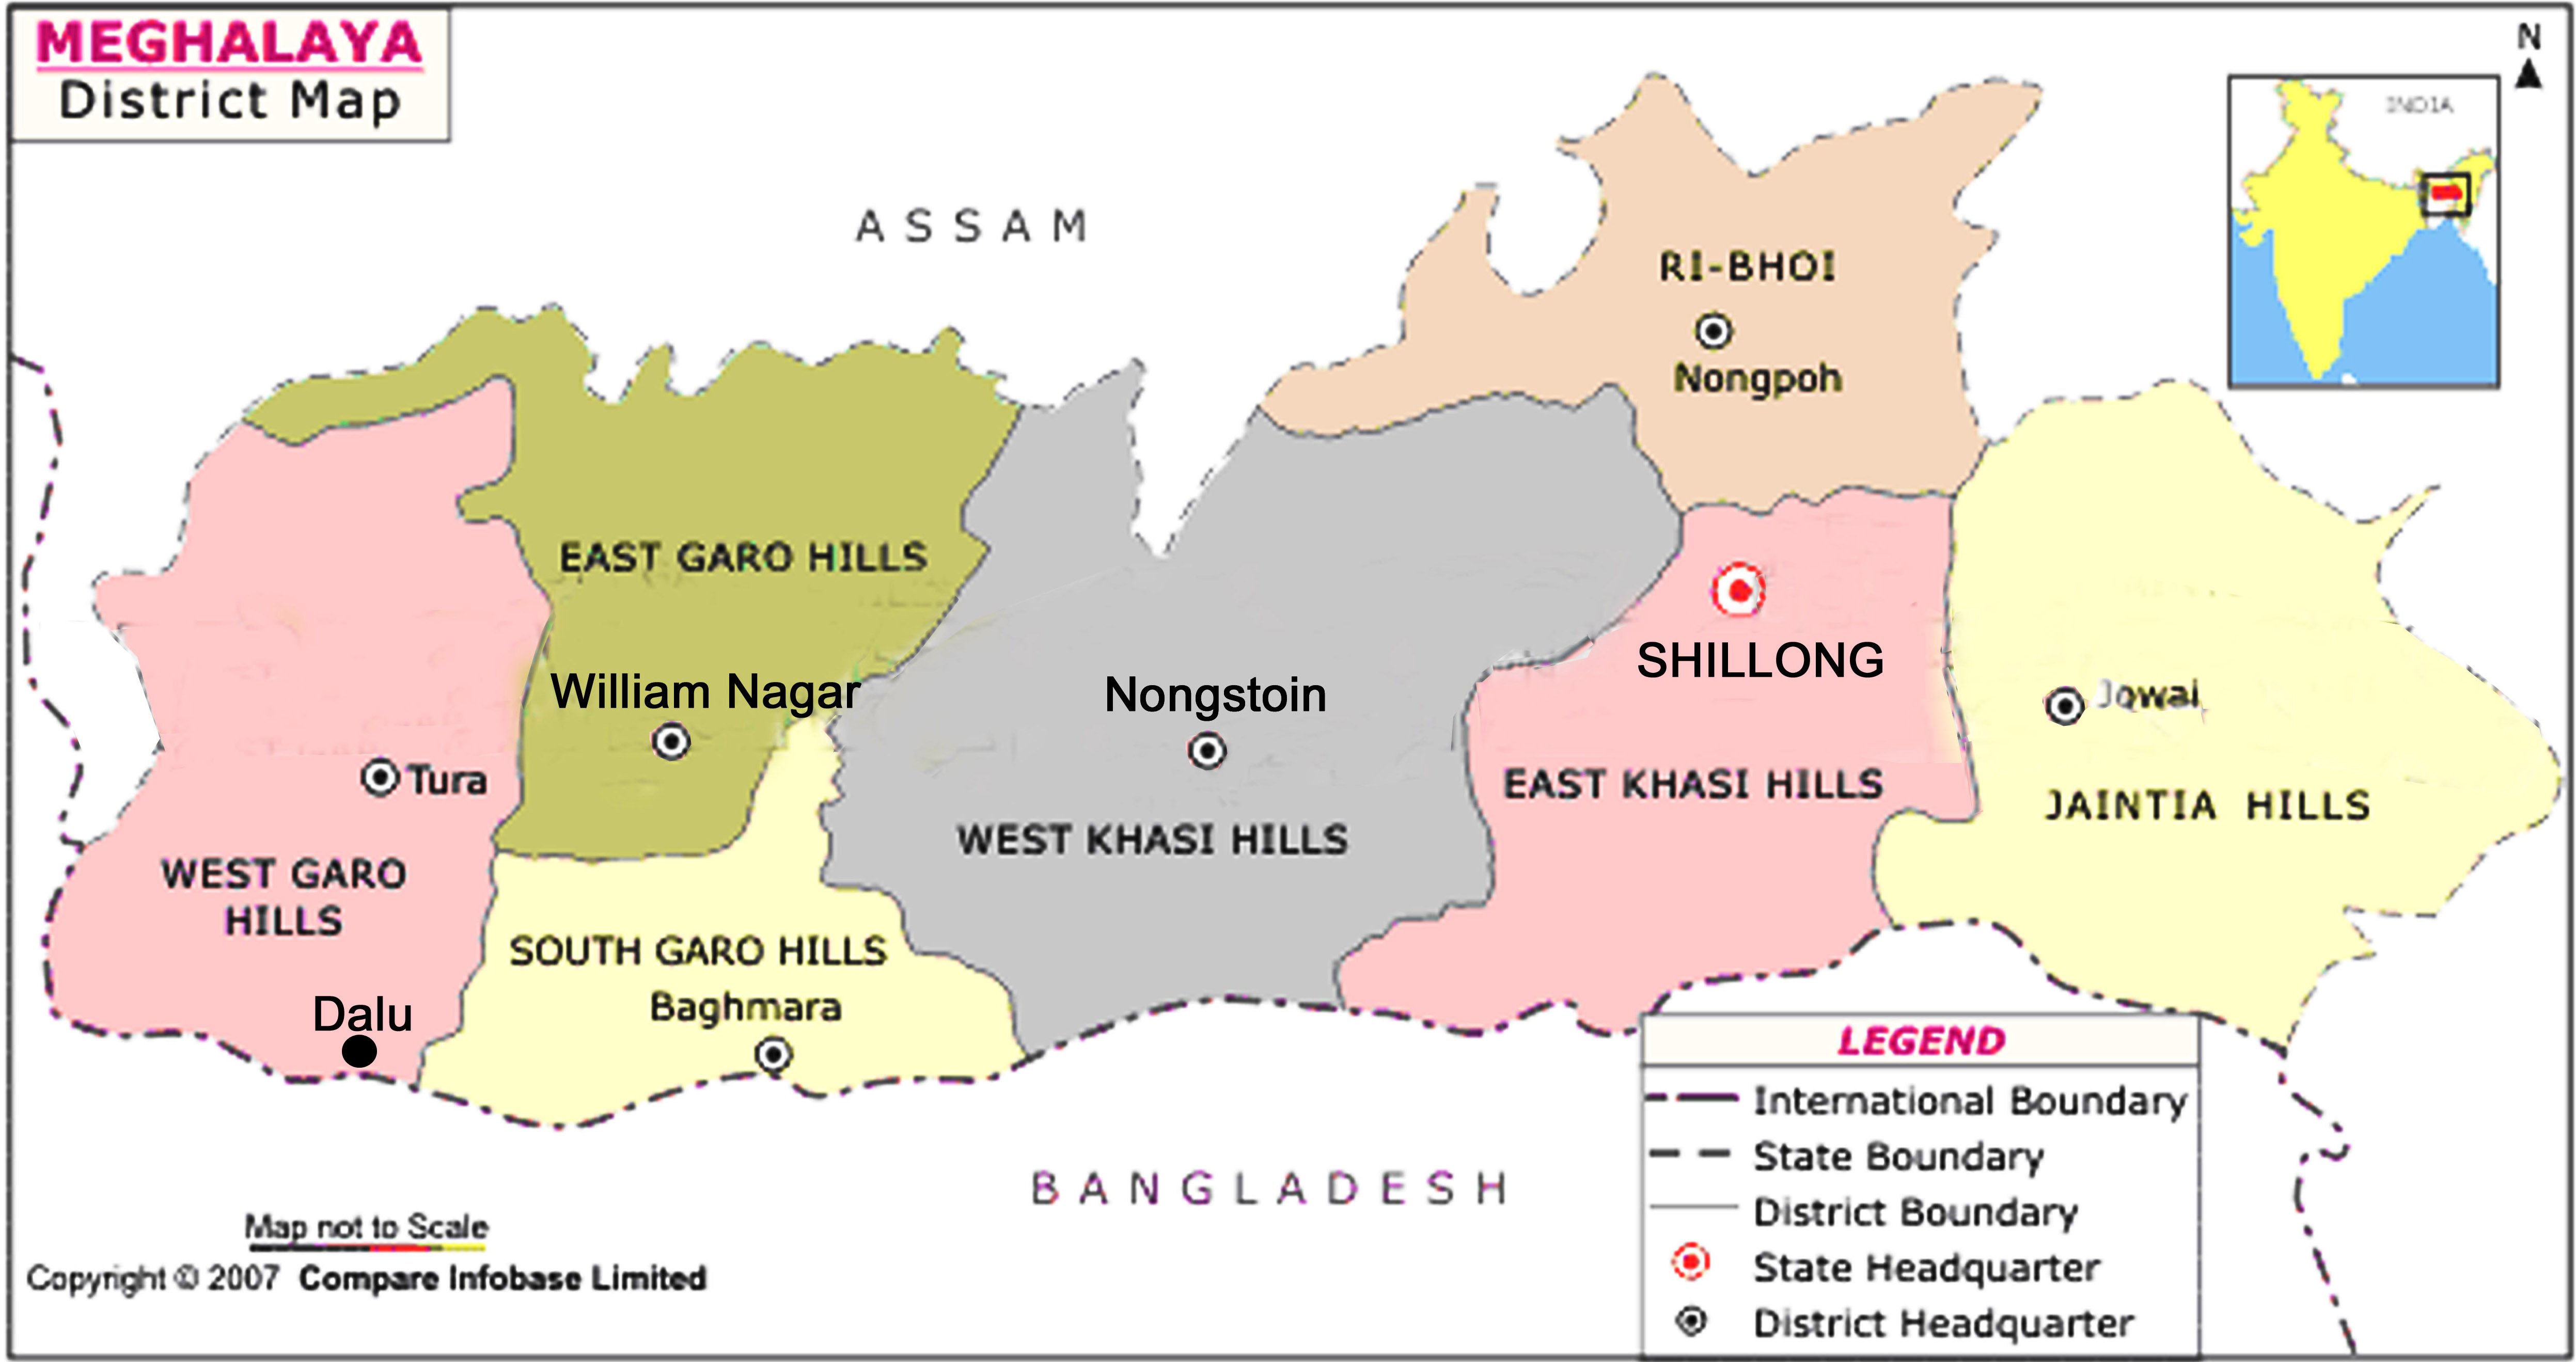 Persistent transmission of malaria in Garo hills of Meghalaya